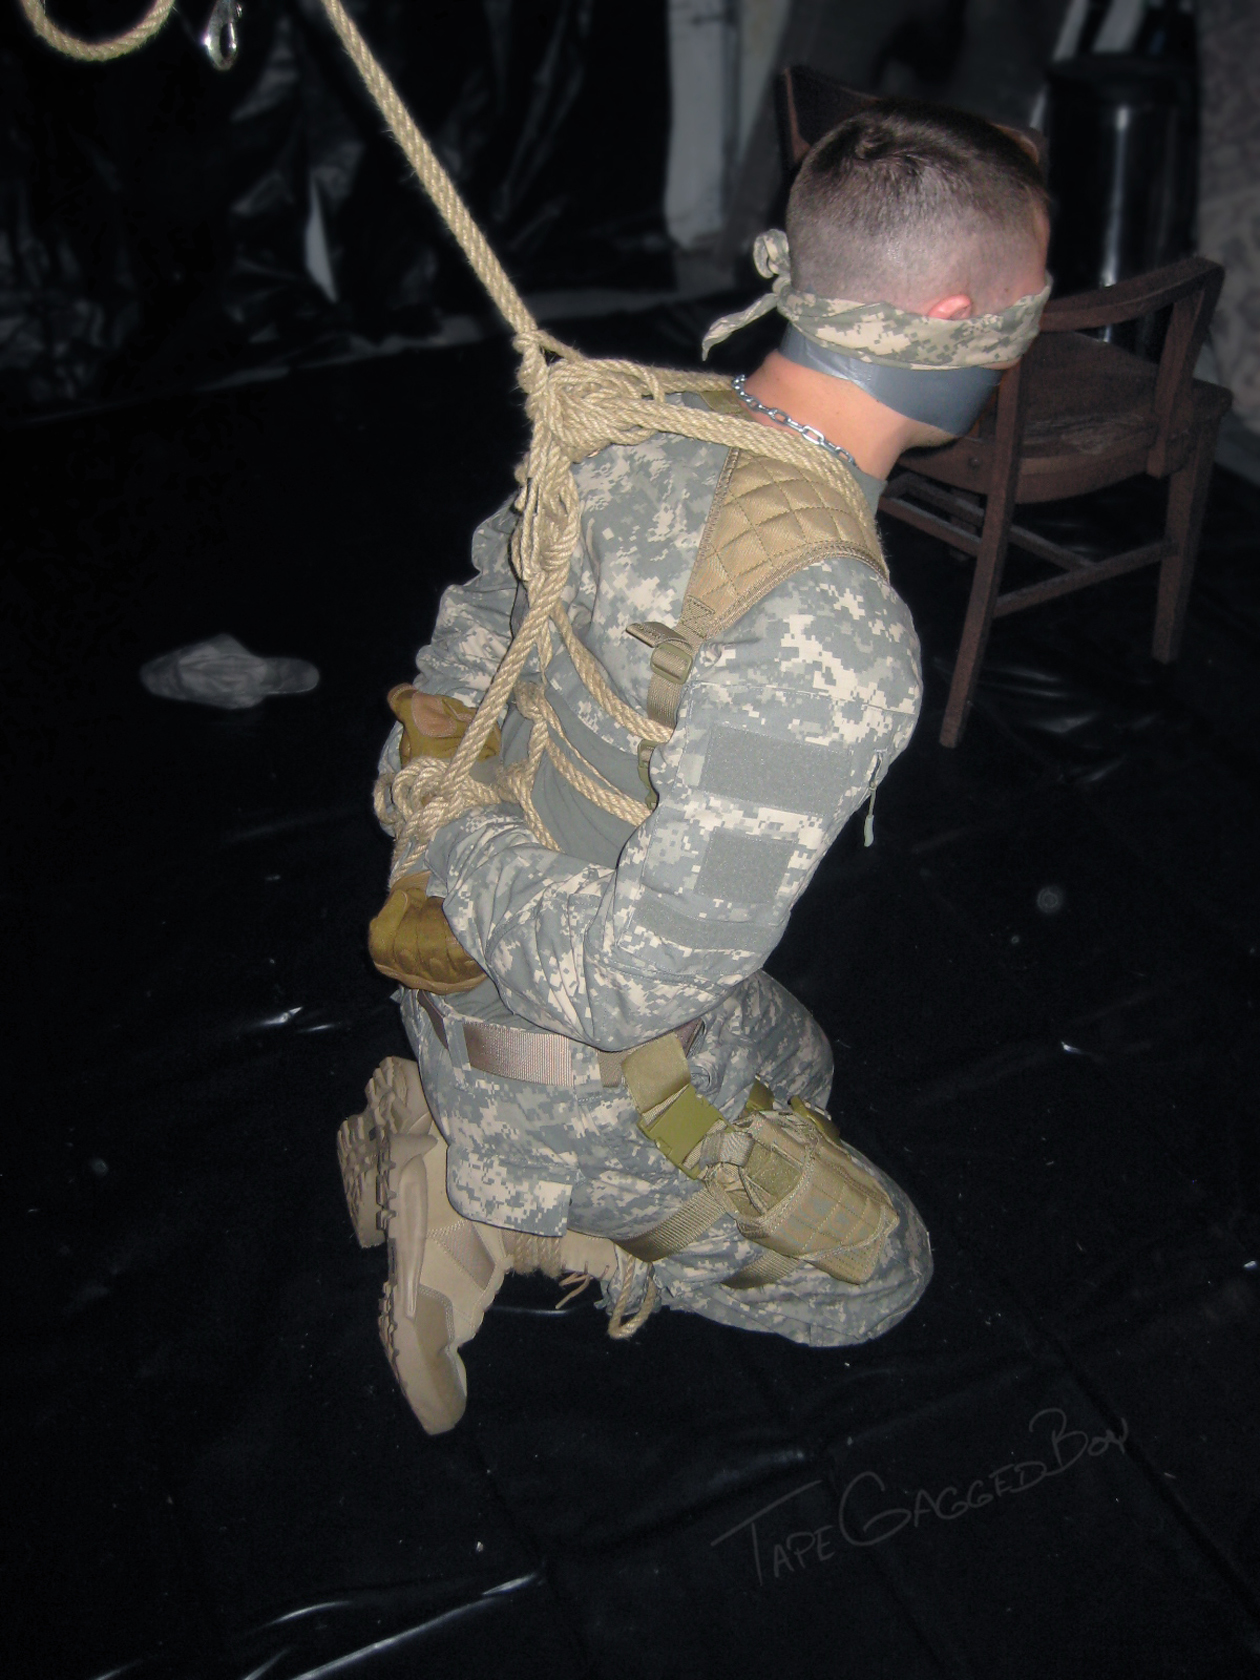 Military men roleplay fetish and kink